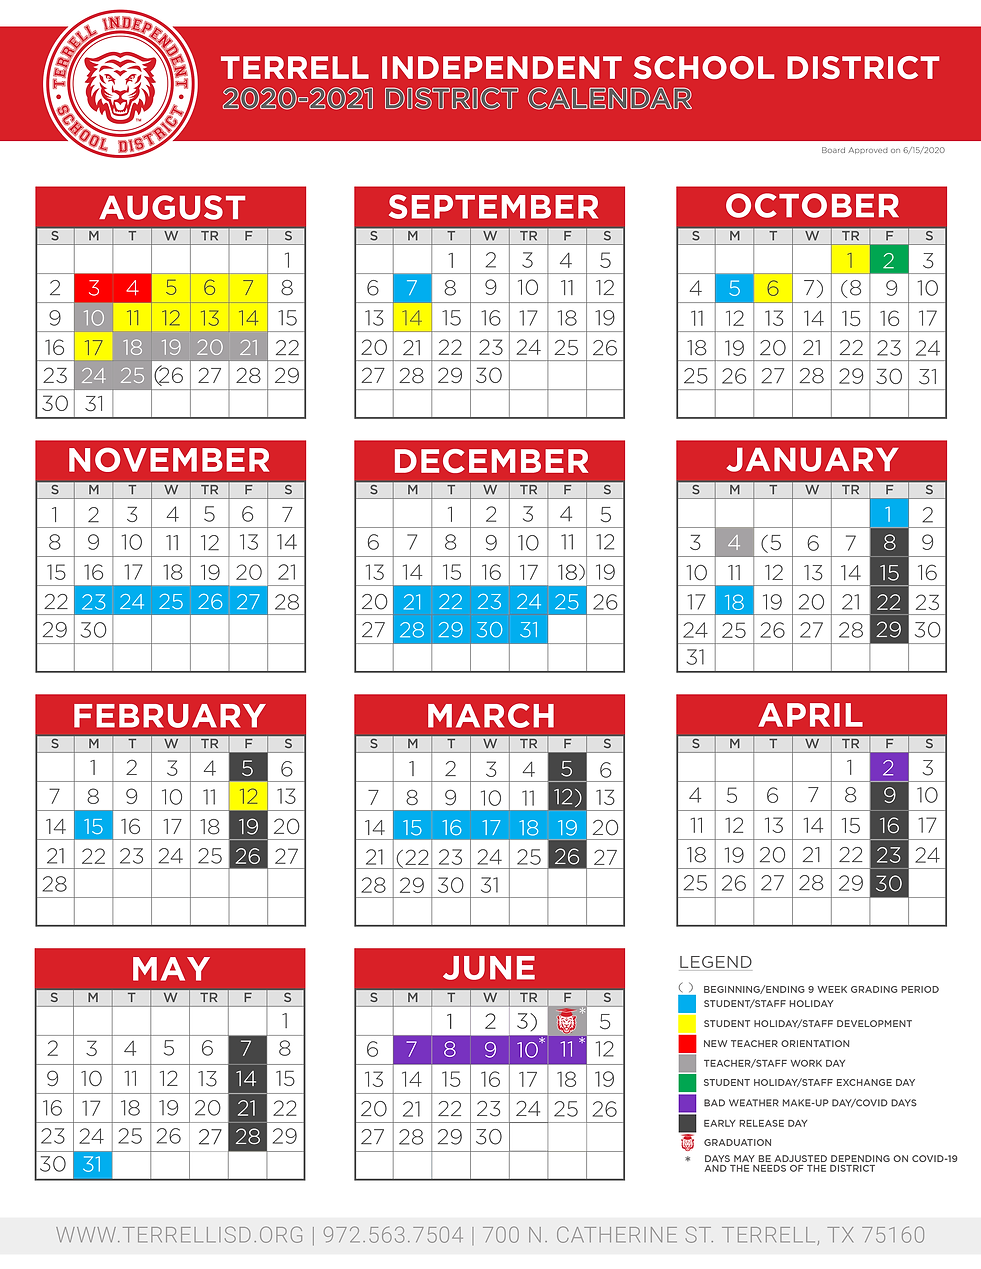 TISD Calendar REVISED 1-2021.png